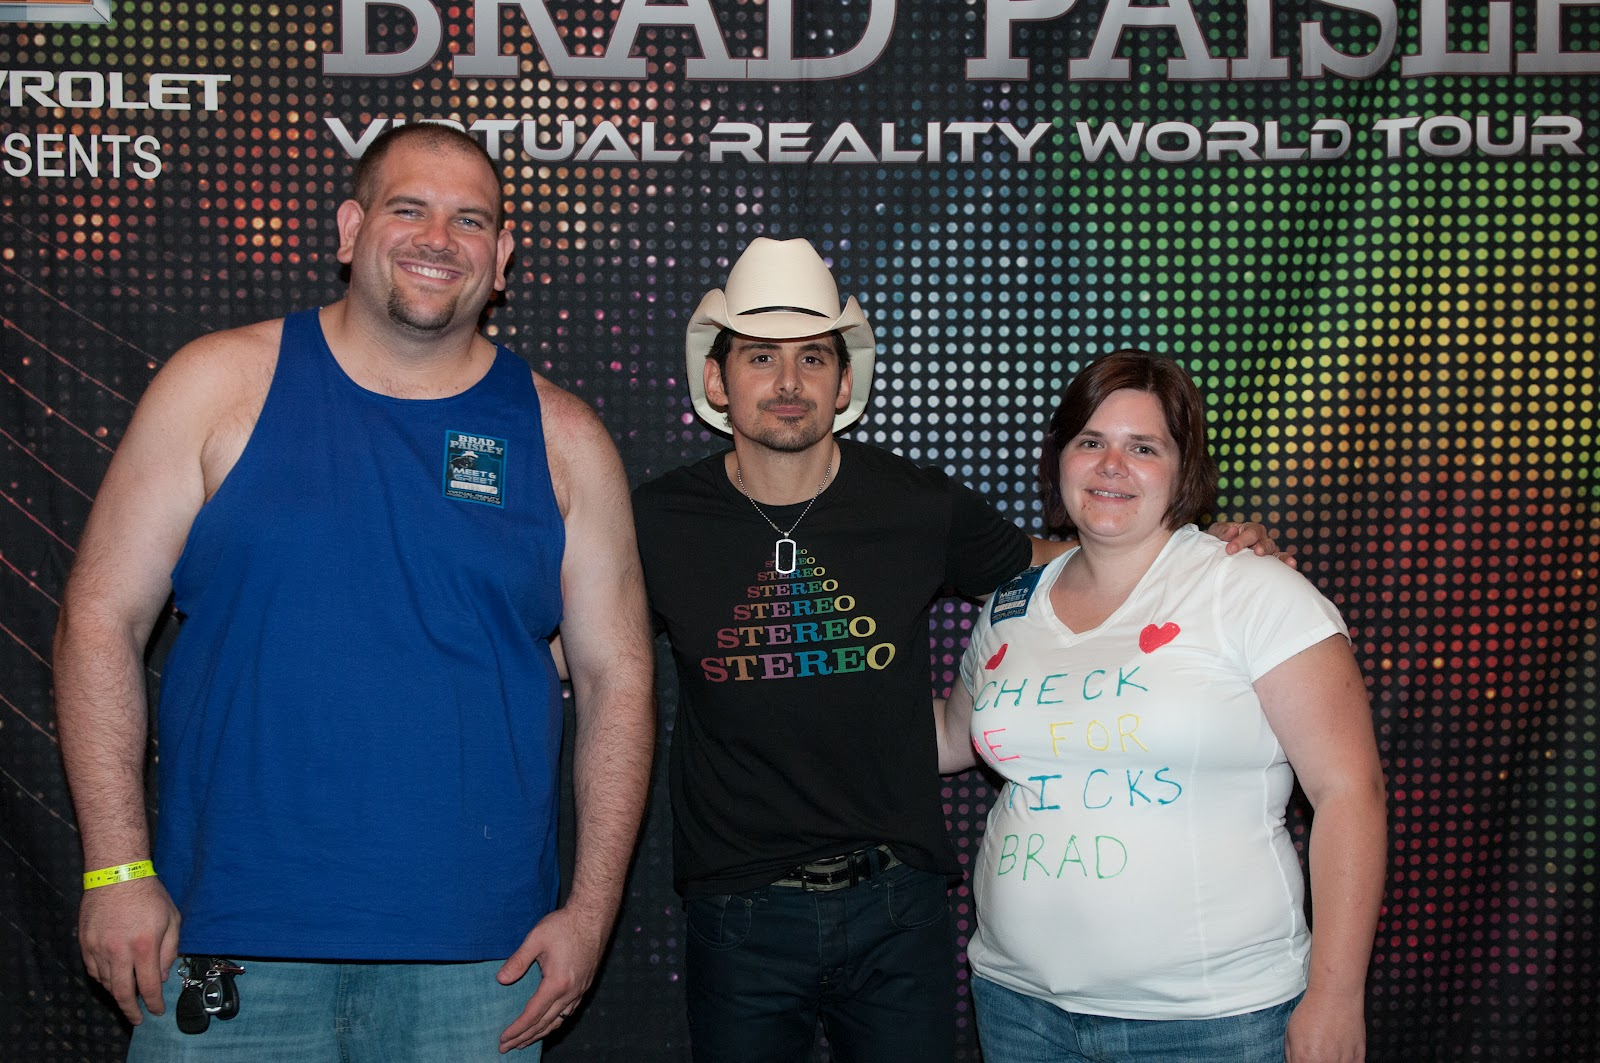 Hit the road with brad paisley sweepstakes win a trip for four to please head over to thrifty car rentals facebook page to sign up for the hit the road with brad paisley sweepstakes the grand prize is a trip for four to m4hsunfo